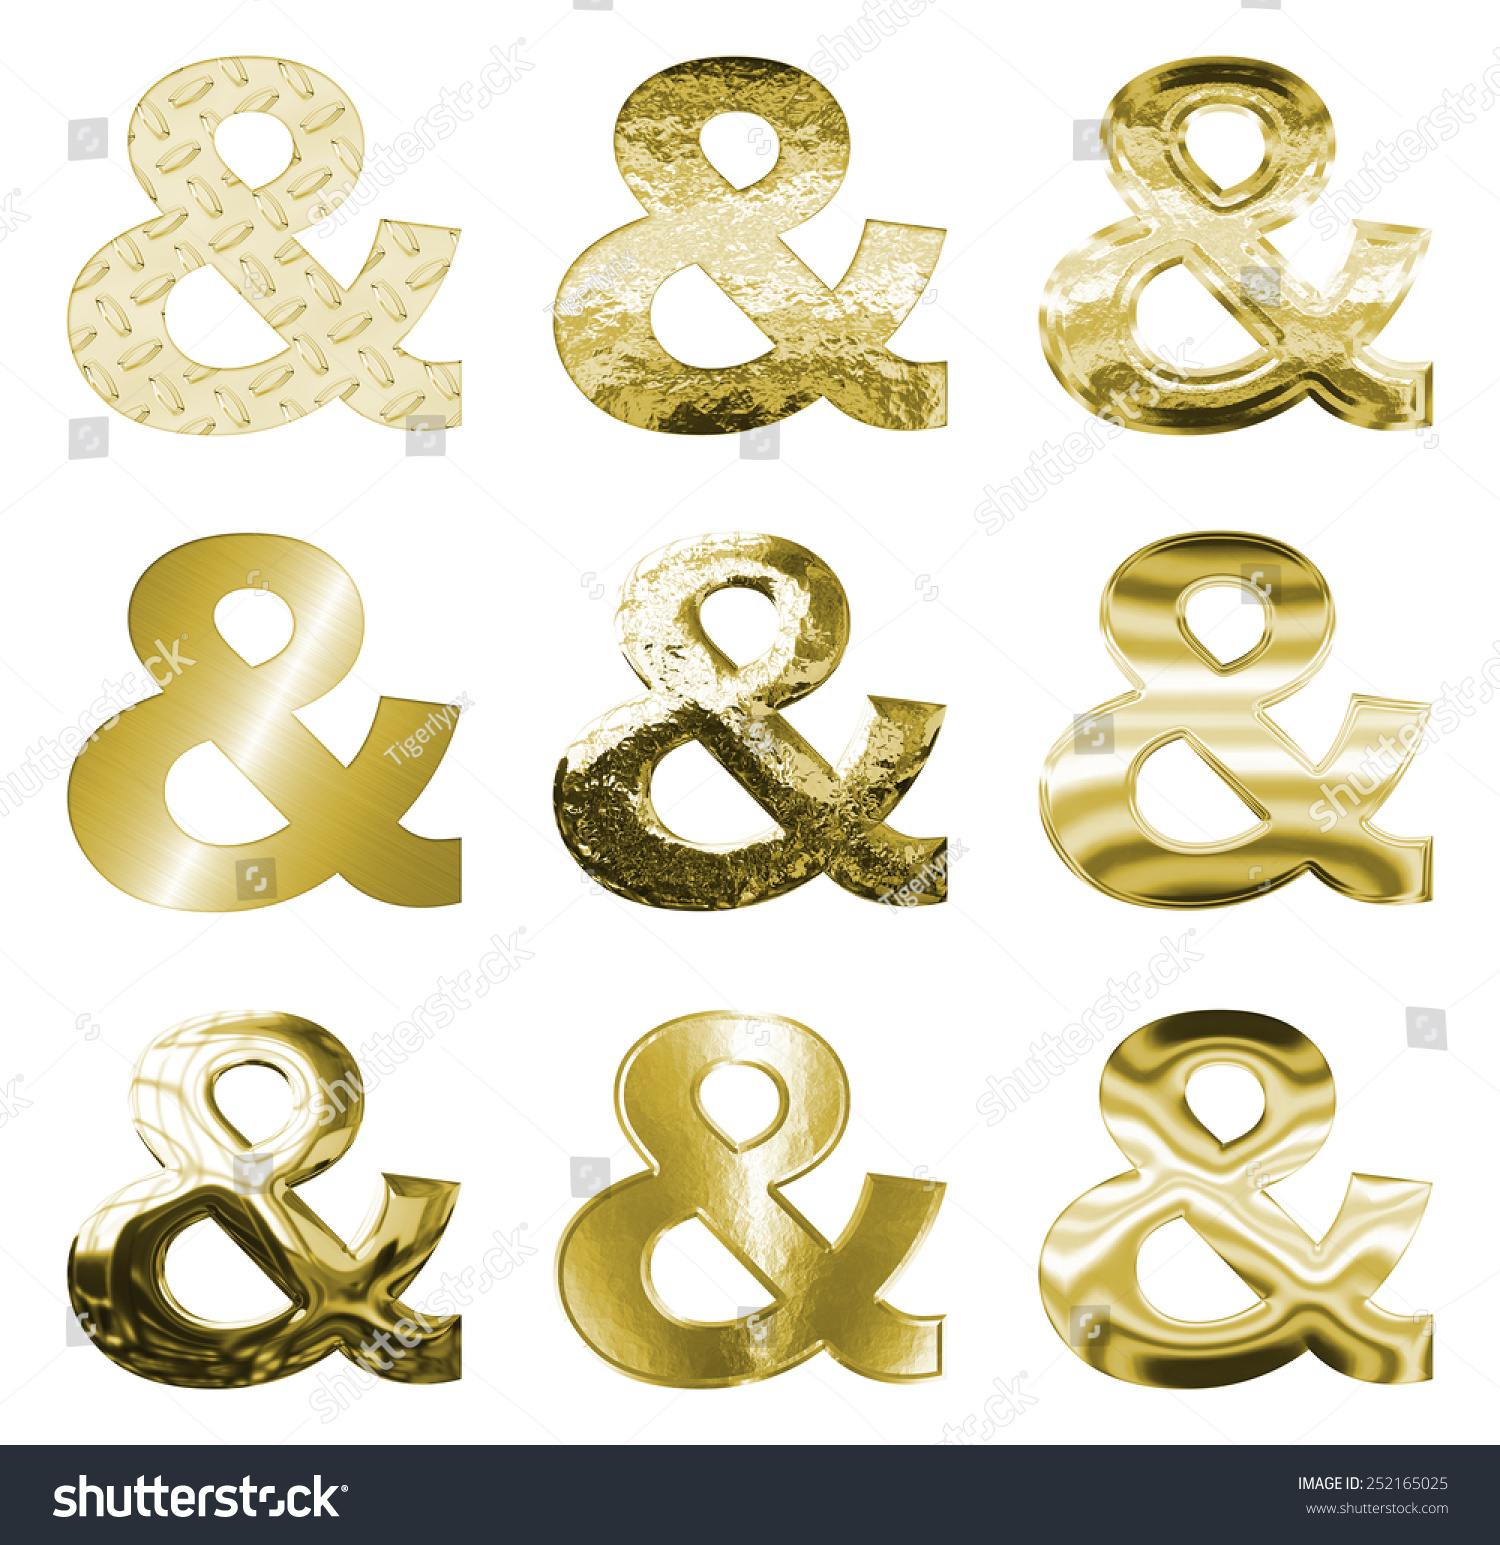 Set 9 Ampersand And Symbols Bright Stock Illustration 252165025